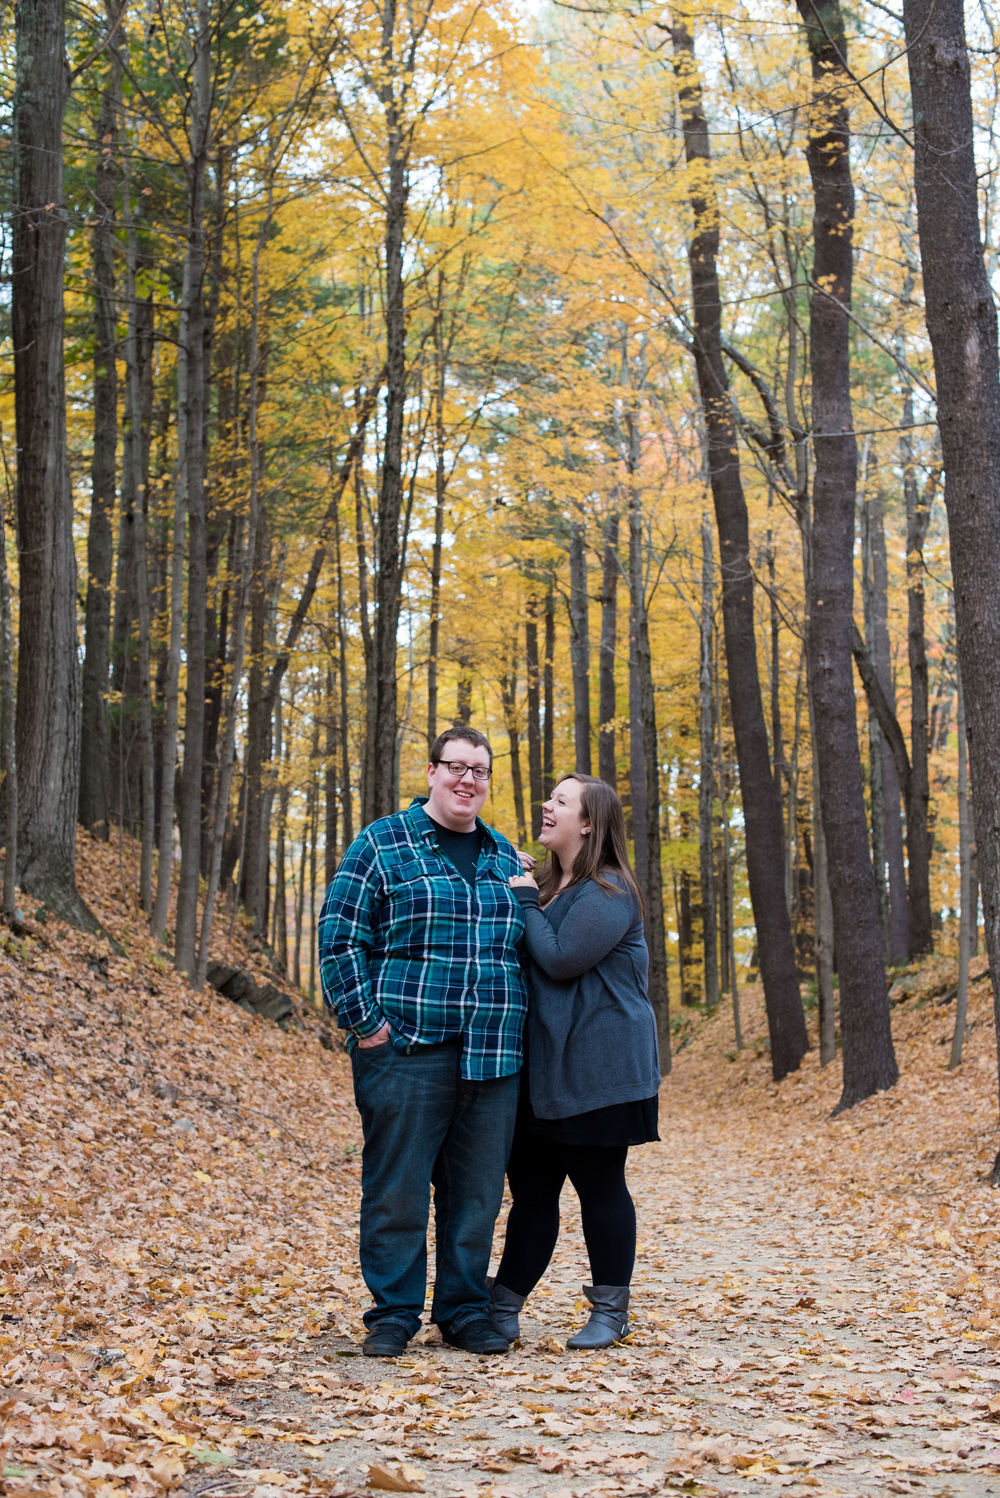 Westville Dam outdoor engagenment photos in Sturbridge, MA by Kara Emily Krantz Photography